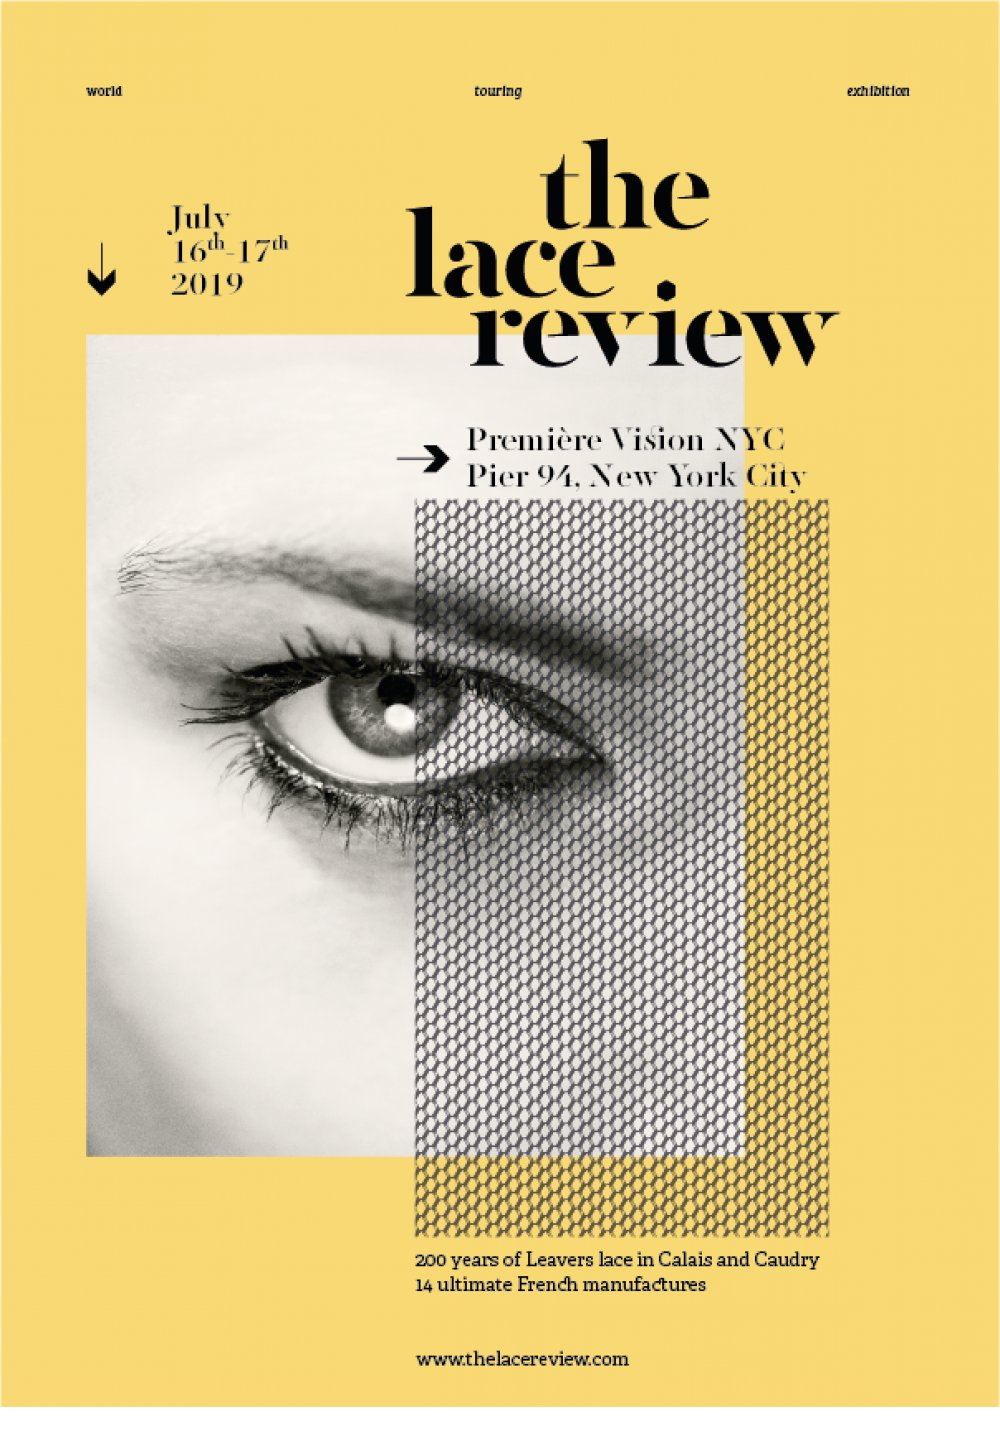 The Lace Review <br /> @New York